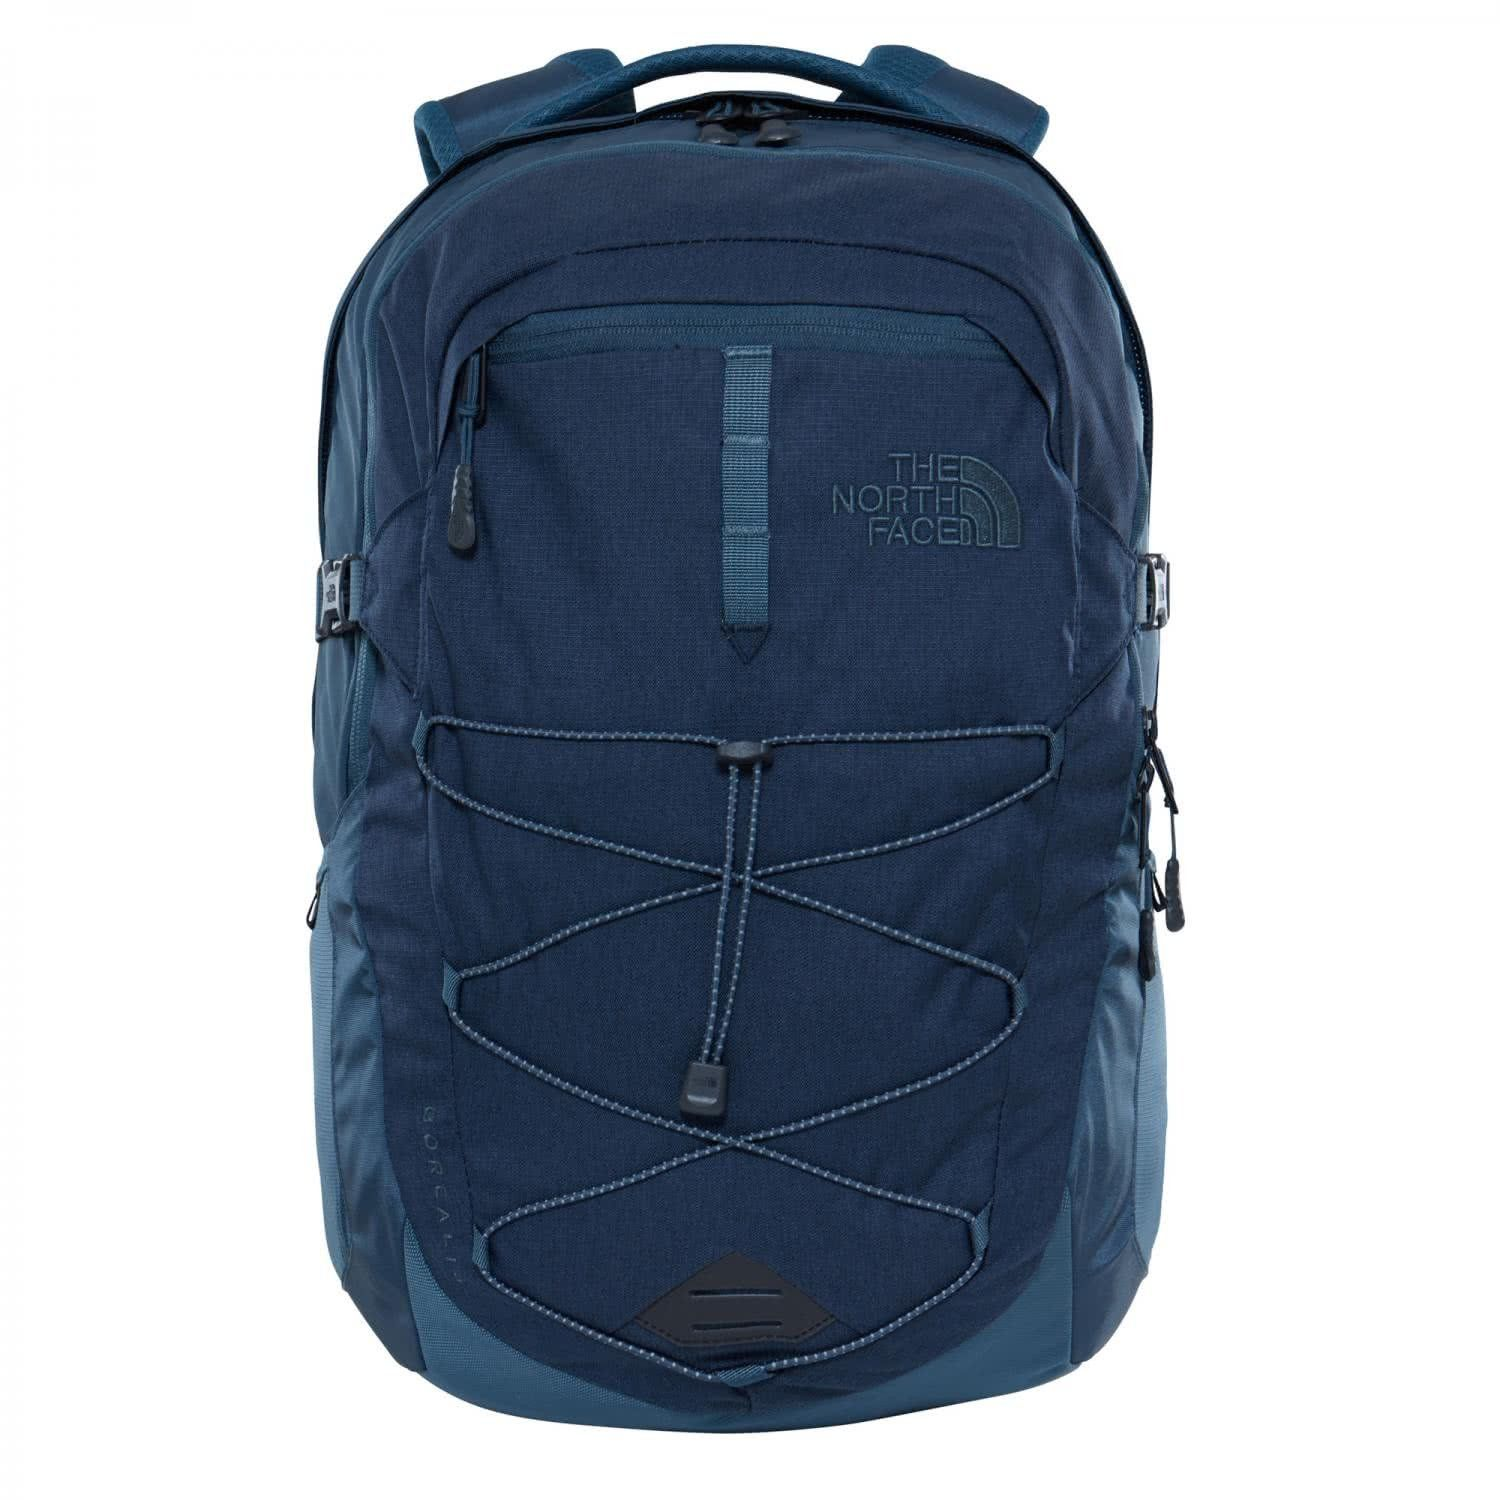 41c4b362a8 The North Face Borealis Backpack - Urban Navy Light Heather Urban Navy -  One Size